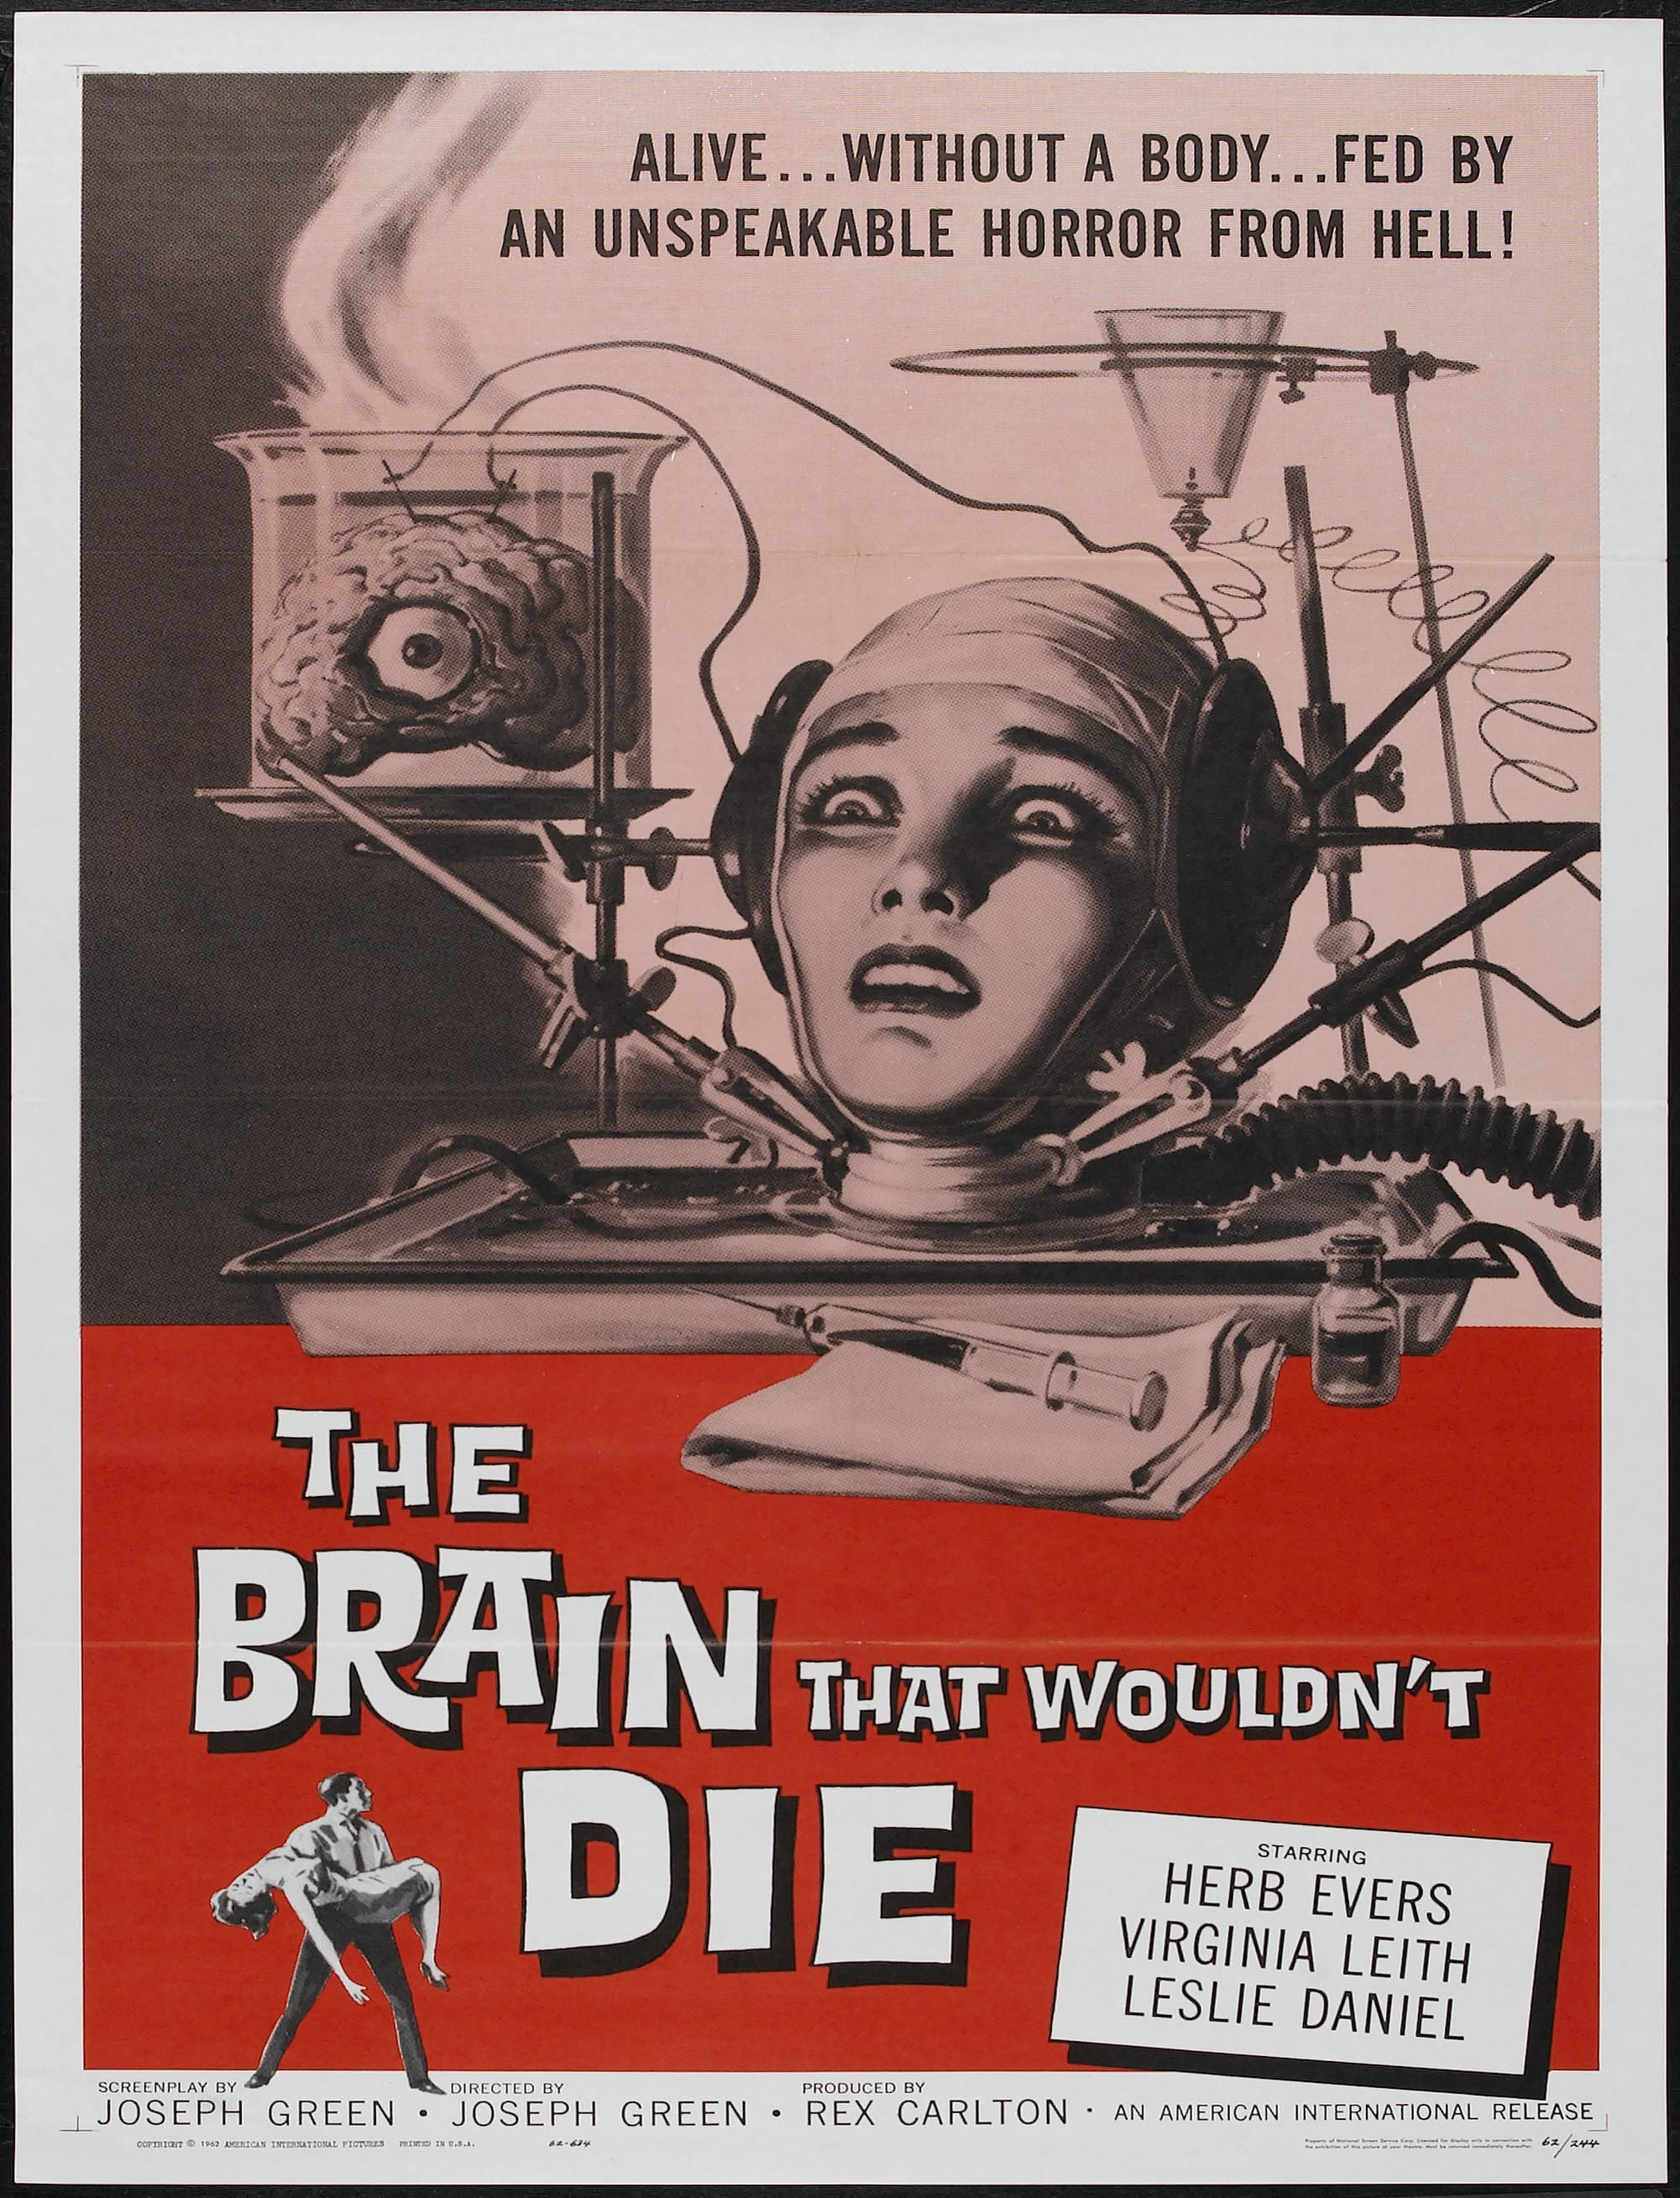 Poster and image movie Film The Brain That Wouldn't Die - The Brain That Wouldn't Die - The Brain That Wouldn't Die -  1962